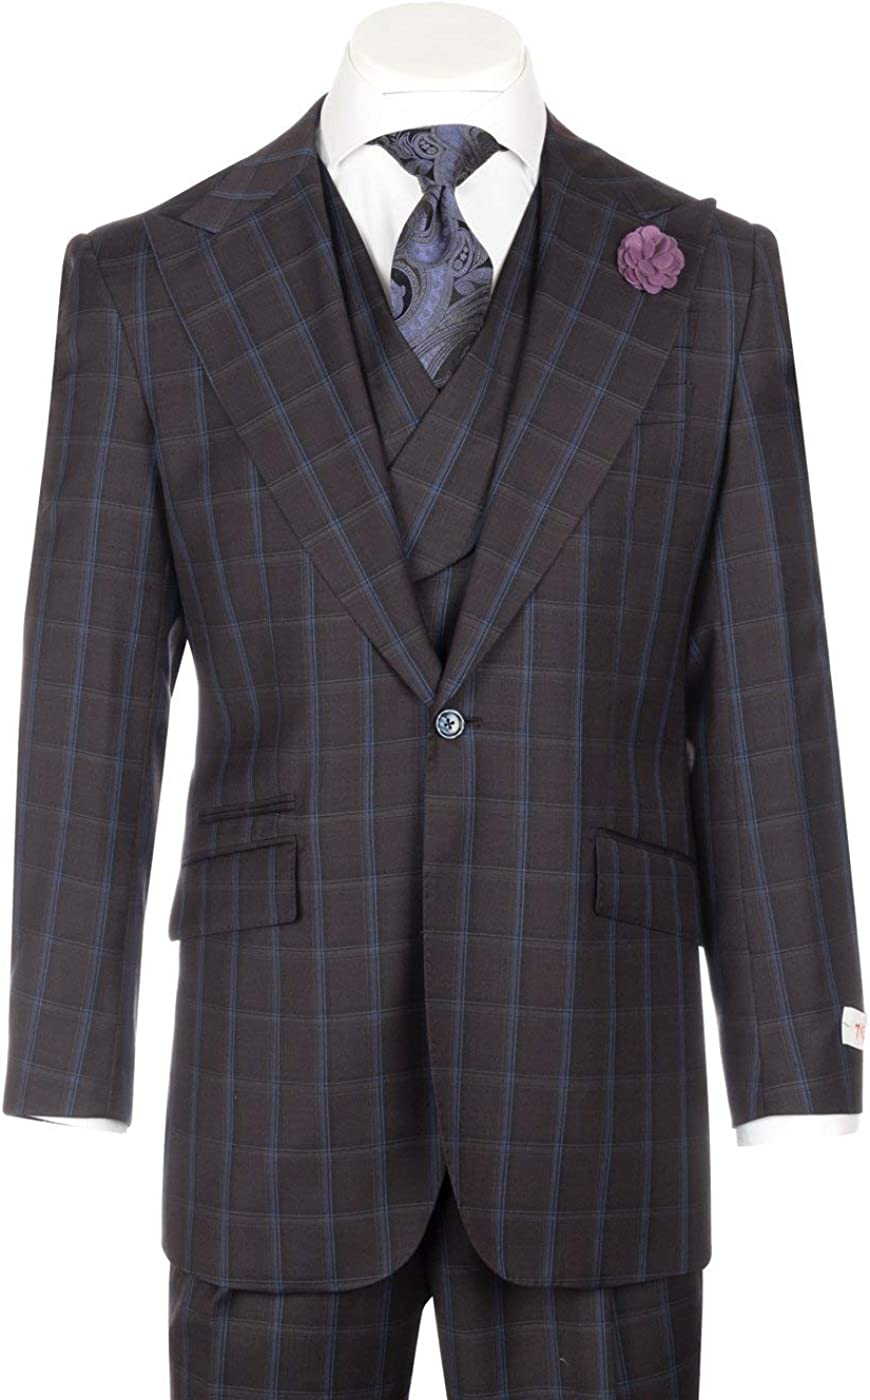 Tiglio New Rosso Bordeaux and French Blue Windowpane Wide Leg Pure Wool Suit & Vest Rosso LR74299/3